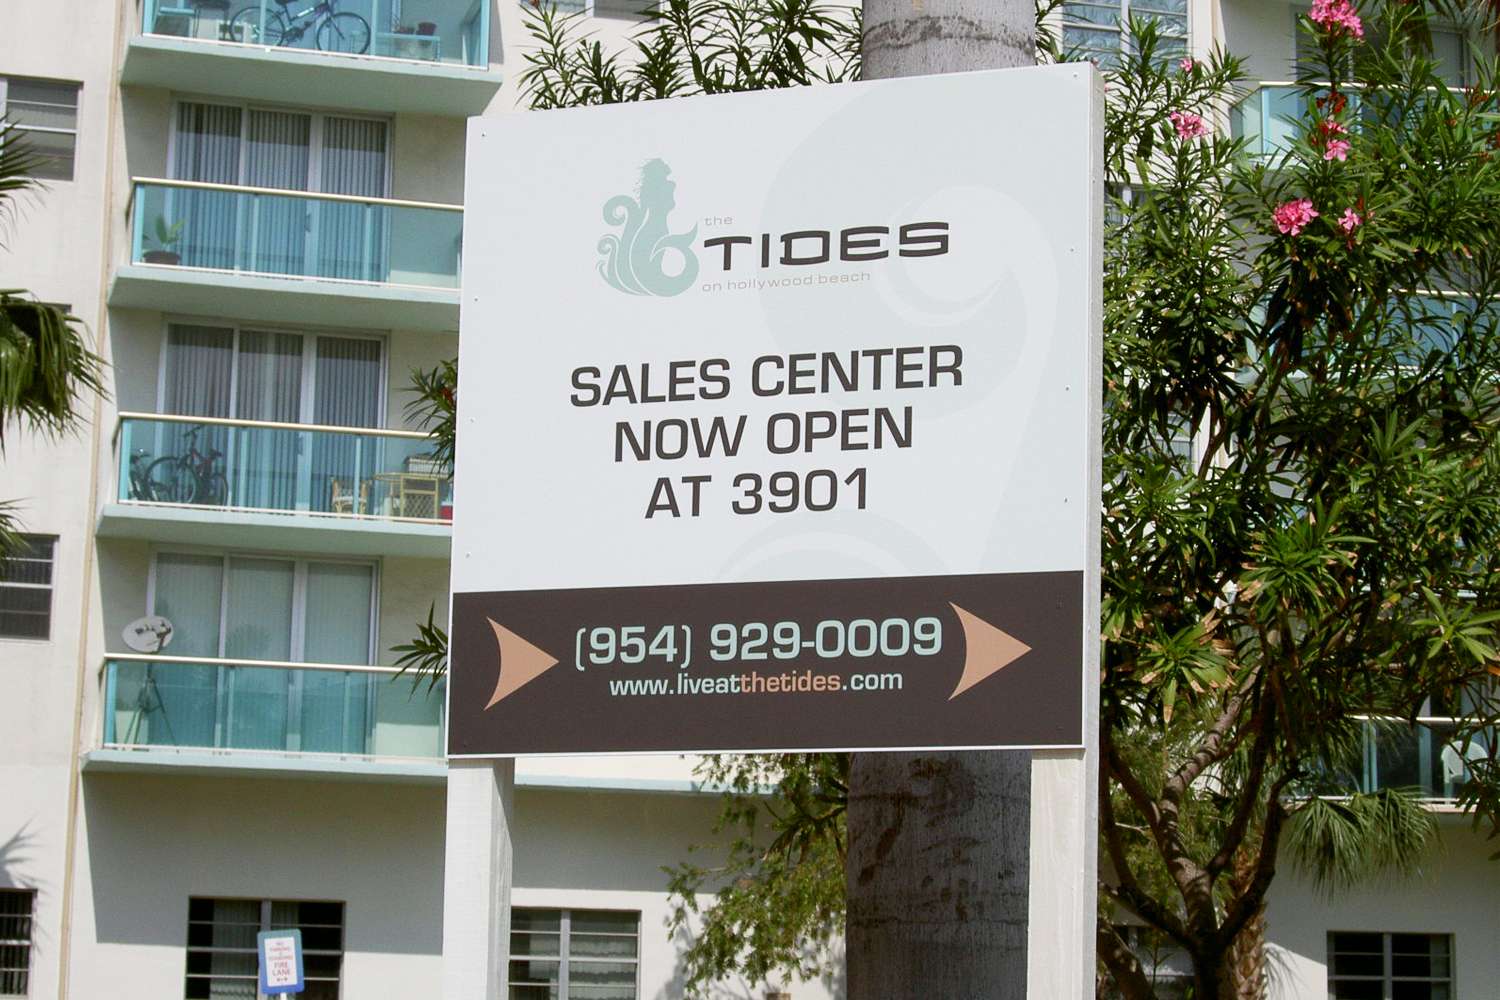 portfolio_signs_tides_sales_center.jpg